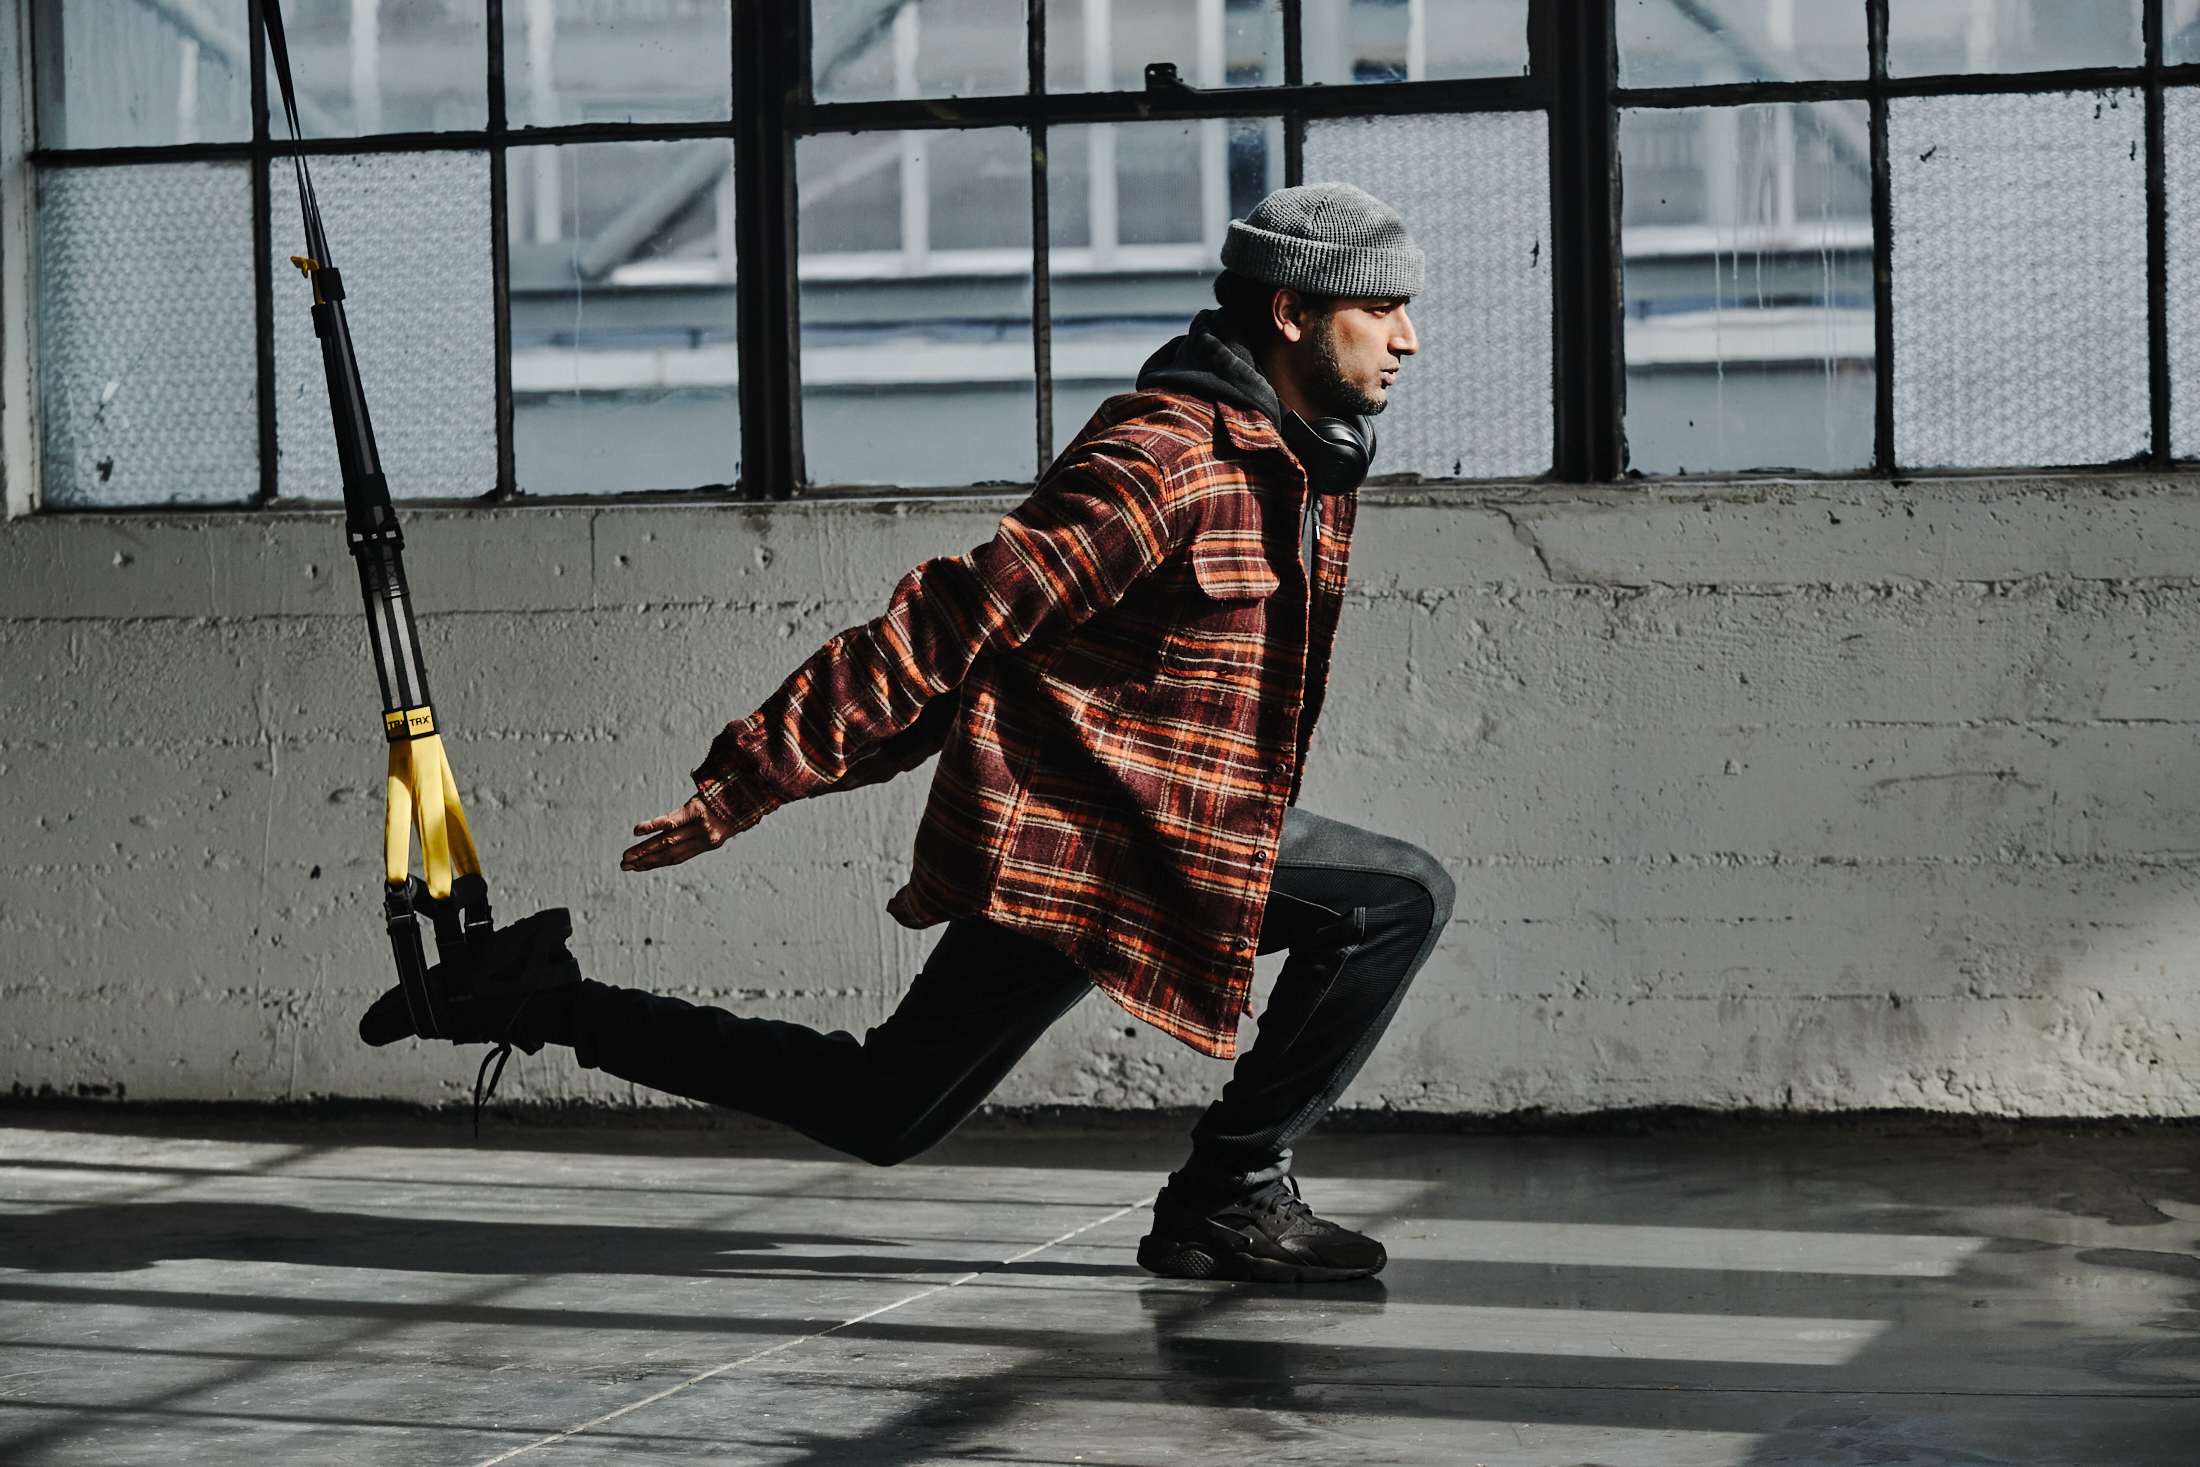 TJ Yale, wearing a beanie, red flannel shirt, and black pants and sneakers, performs a TRX Lunge.